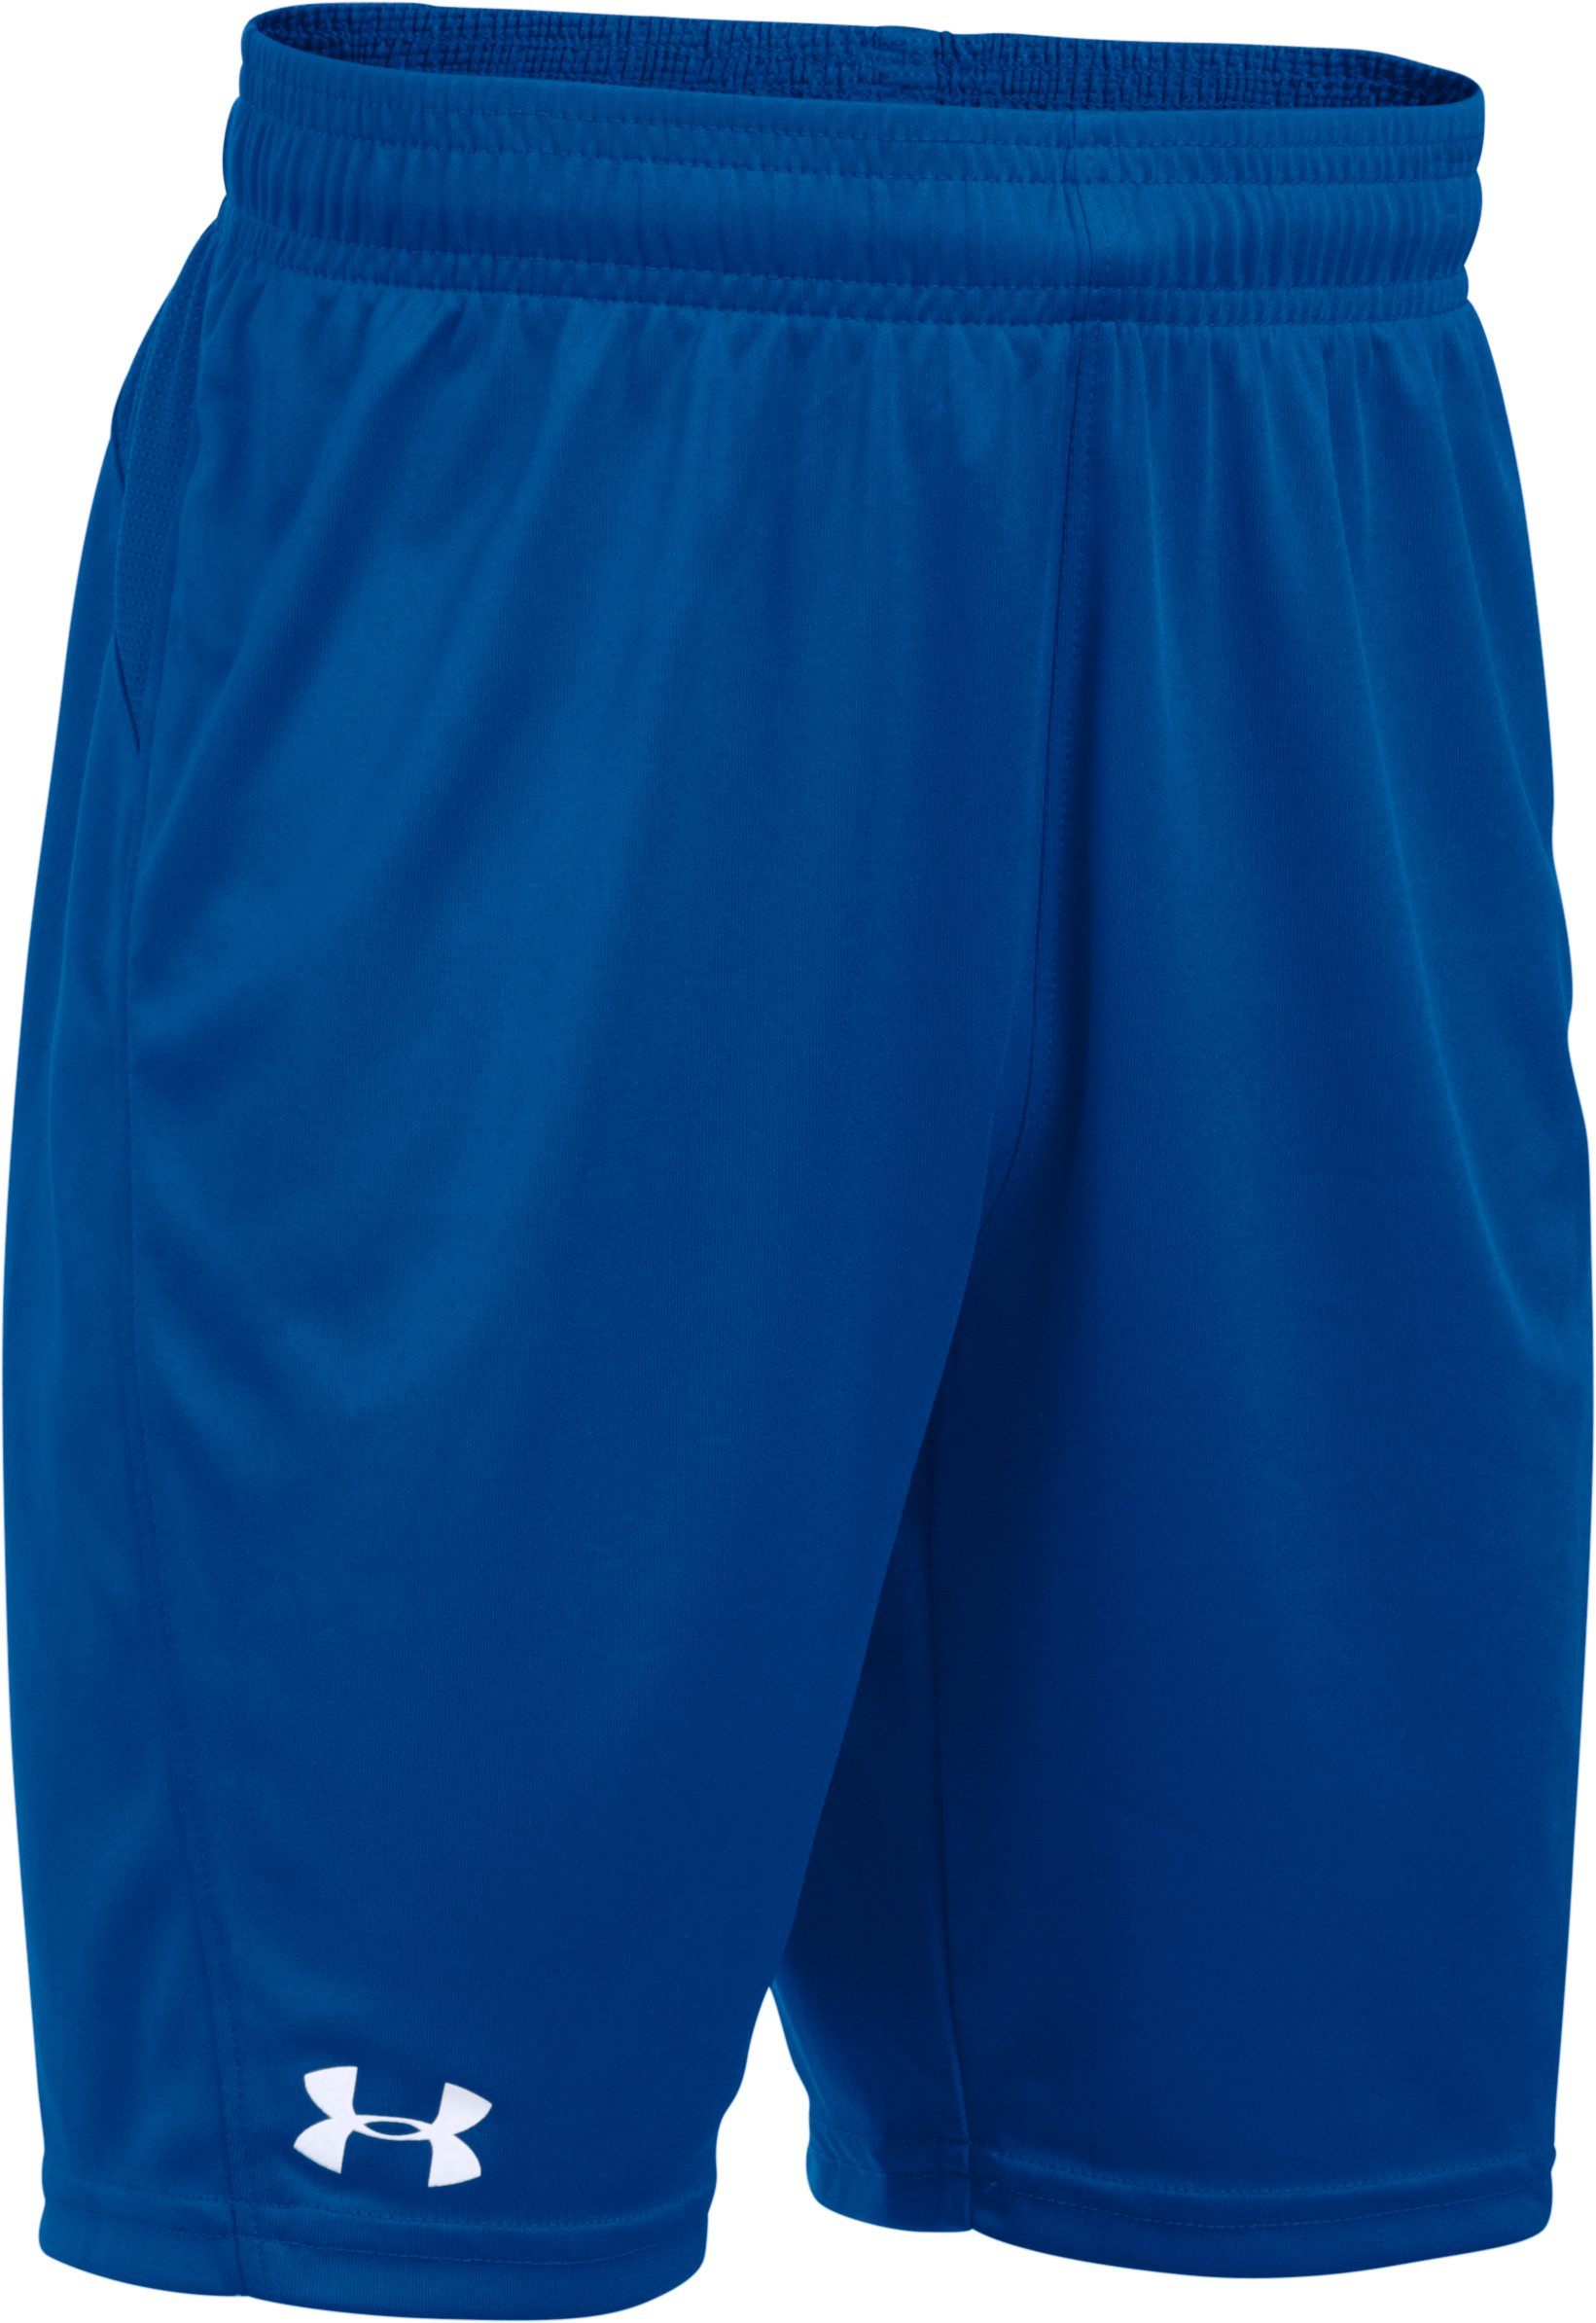 Boys' UA Challenger Knit Shorts, Royal,